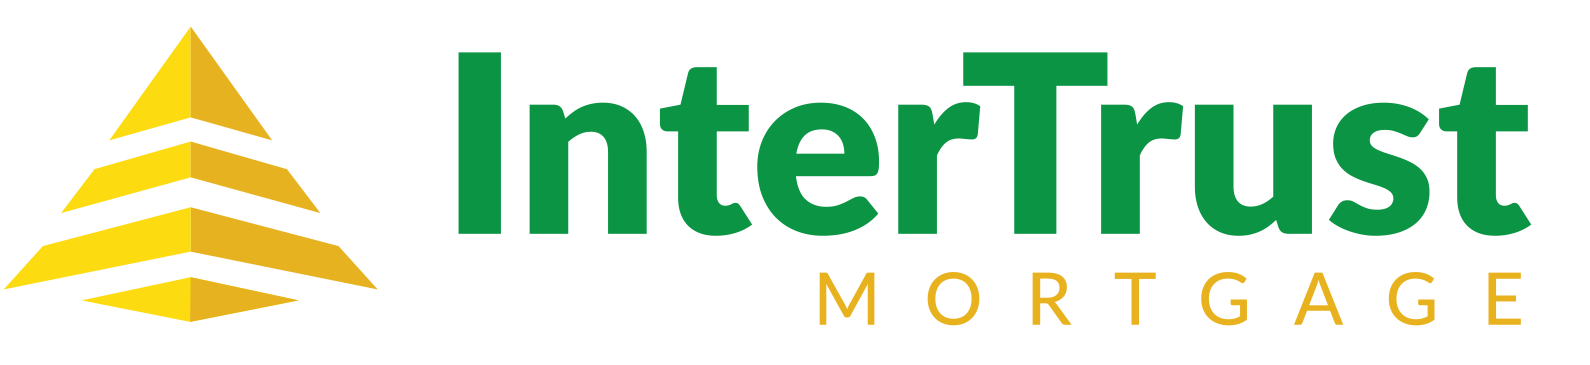 InterTrust Mortgage, LLC